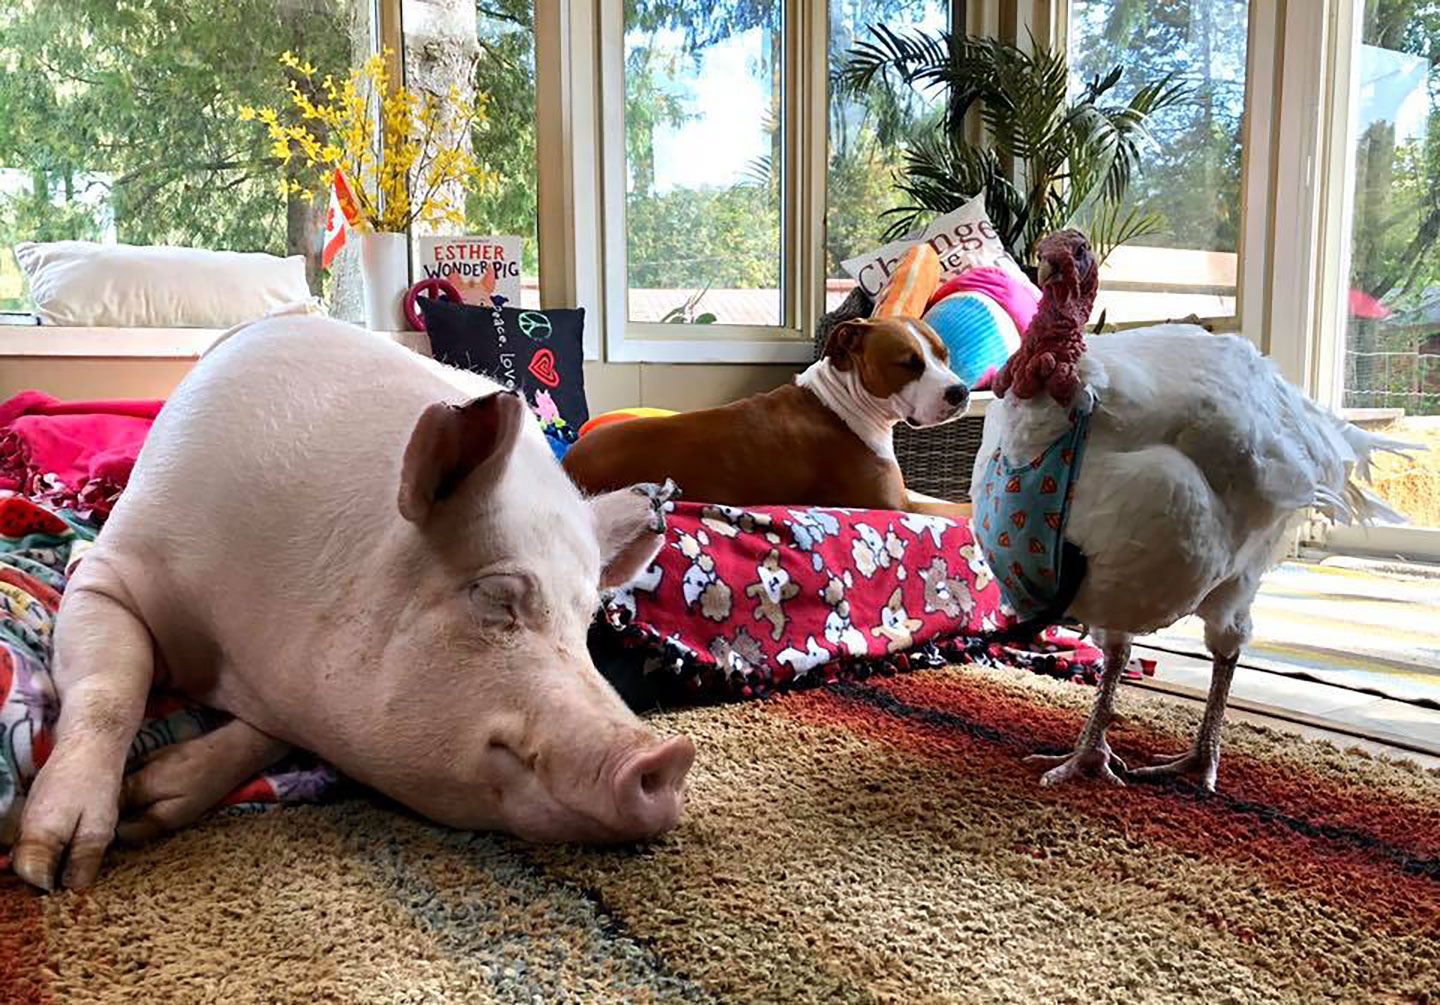 Esther the Wonder pig and her turkey and dog friends